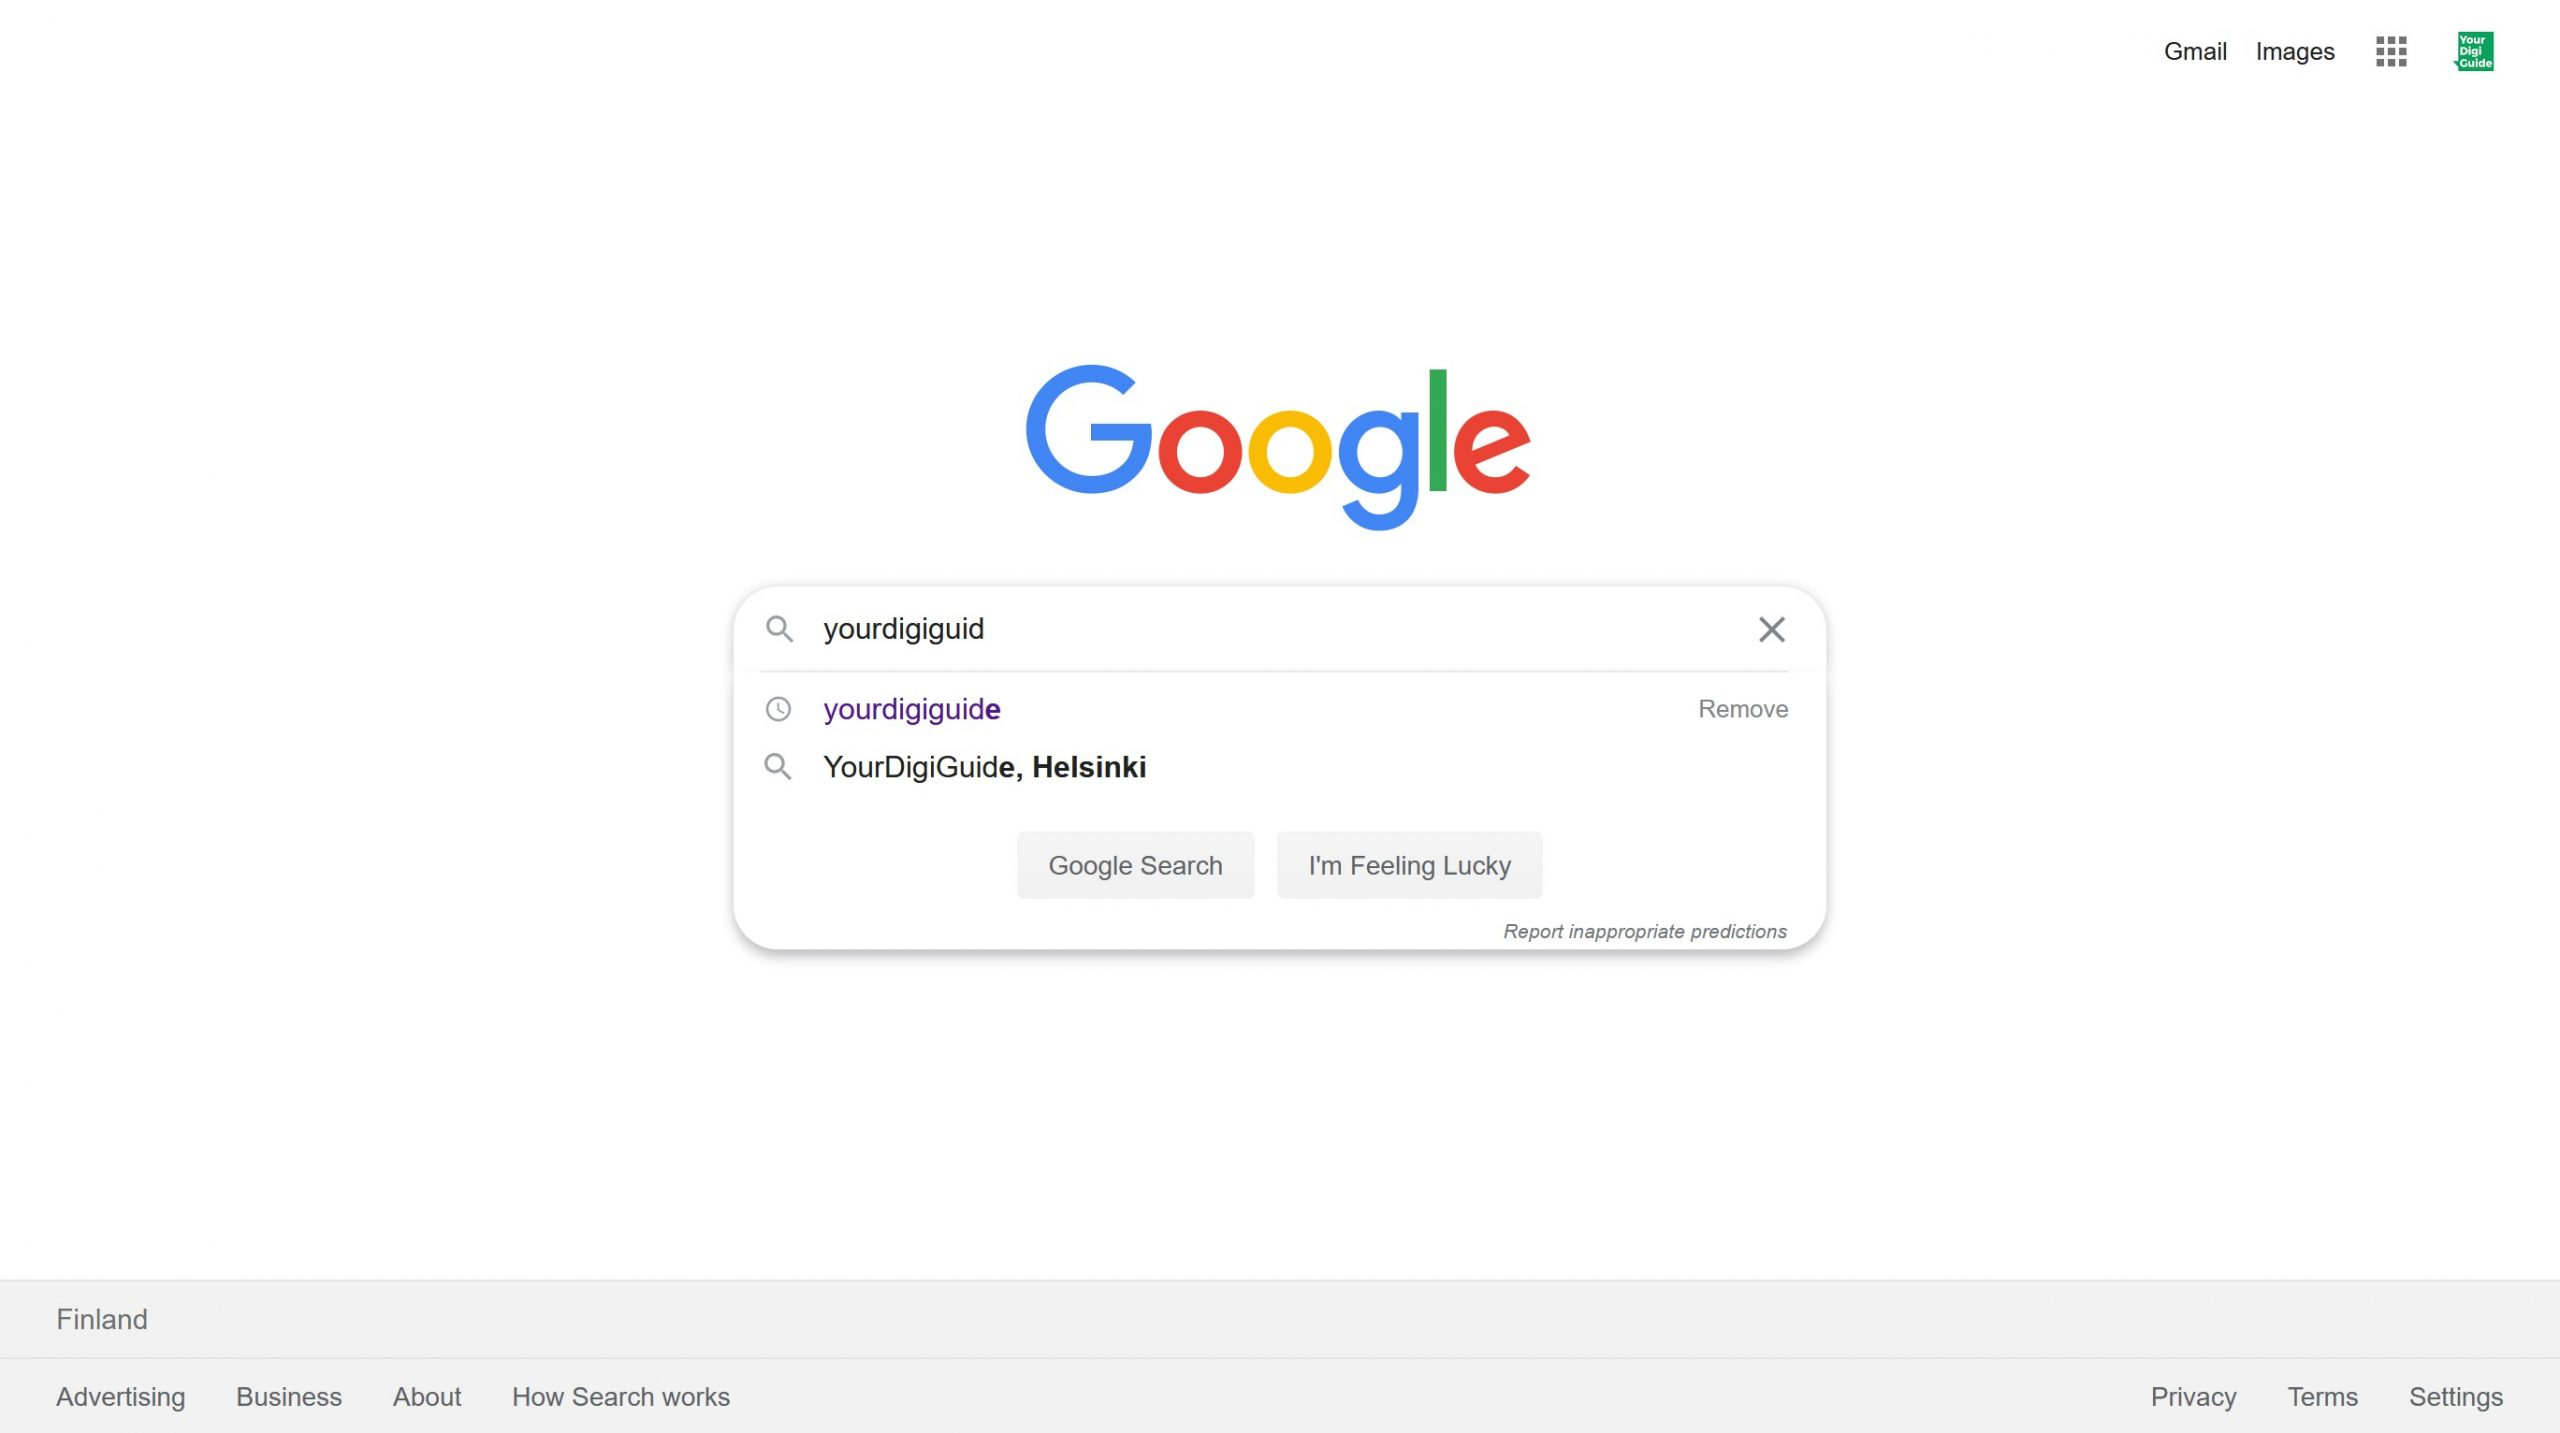 How to update your information on Google